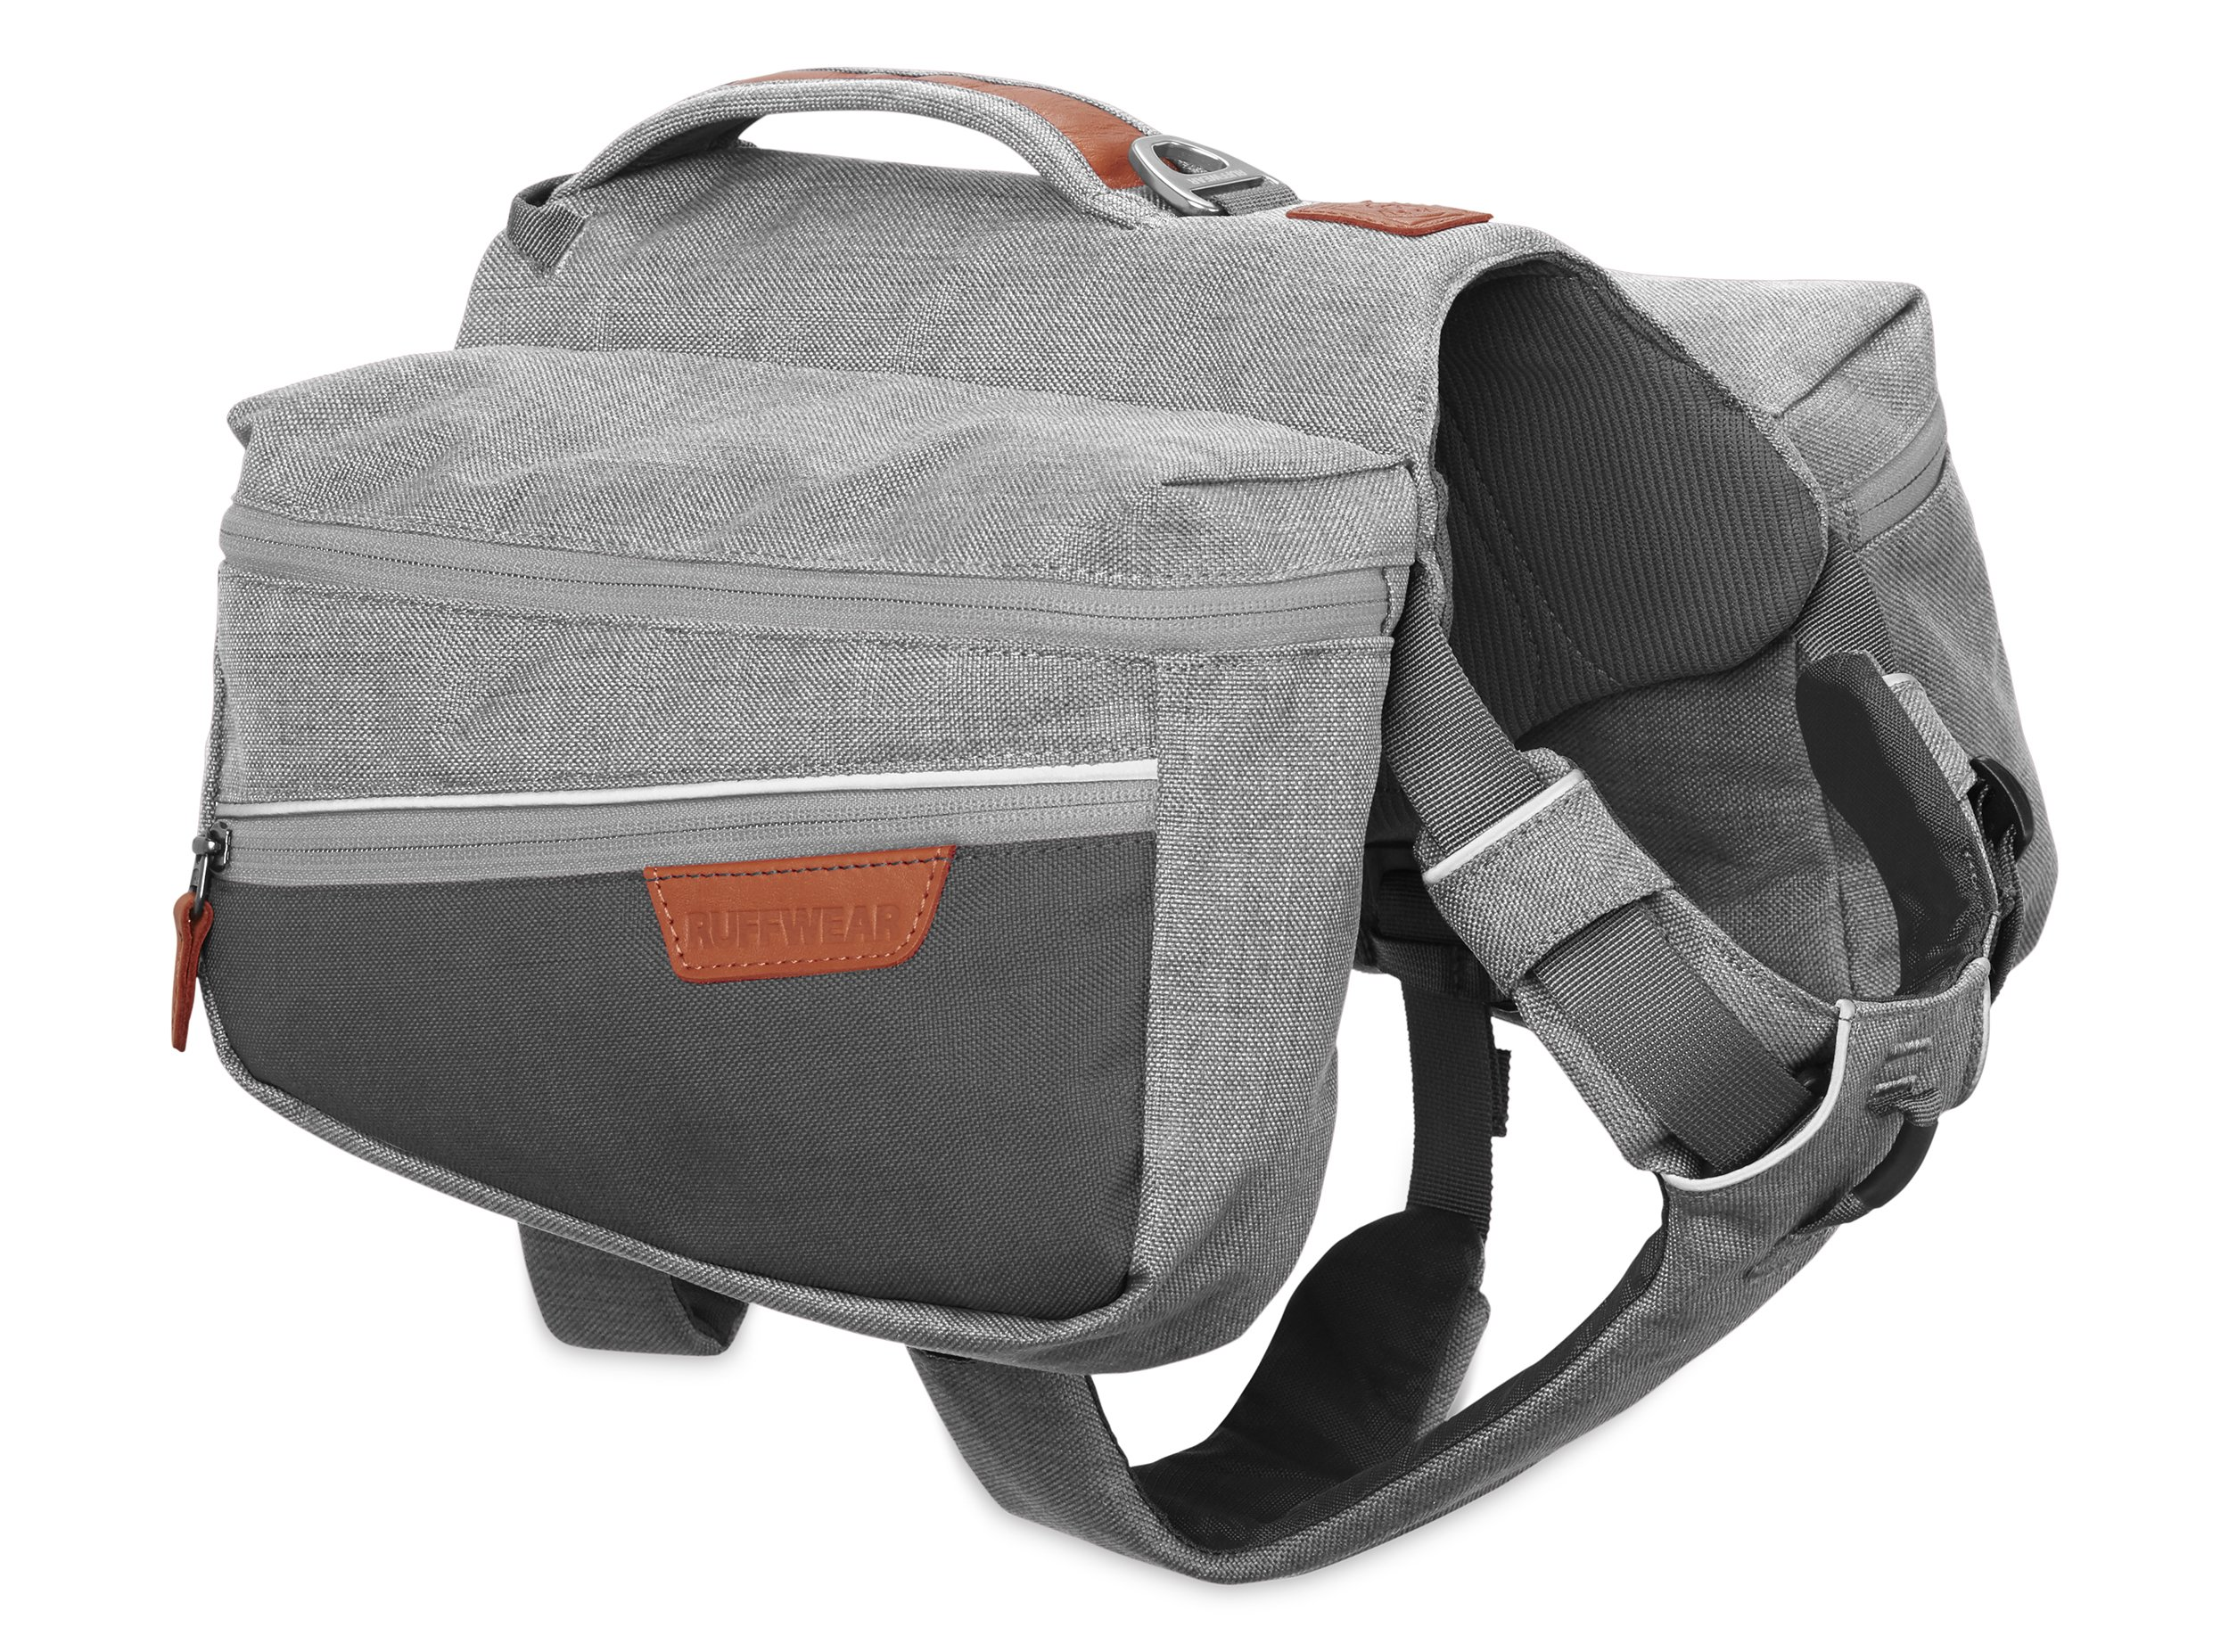 RUFFWEAR - Commuter Everyday Pack for Dogs, Cloudburst Gray, Small